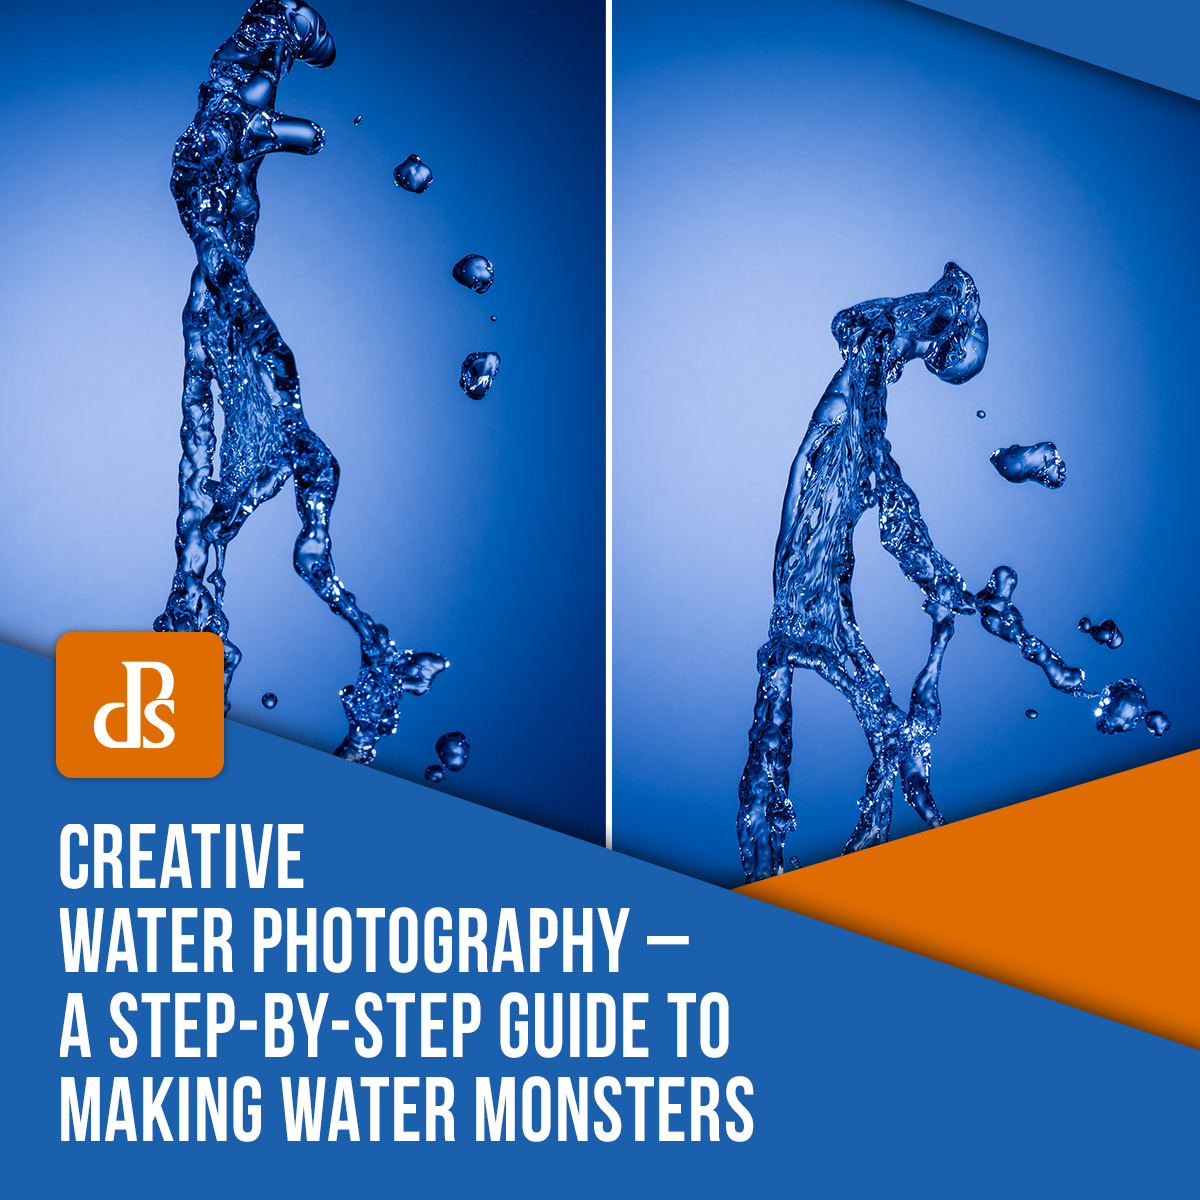 creative-water-photography-making-water-monsters